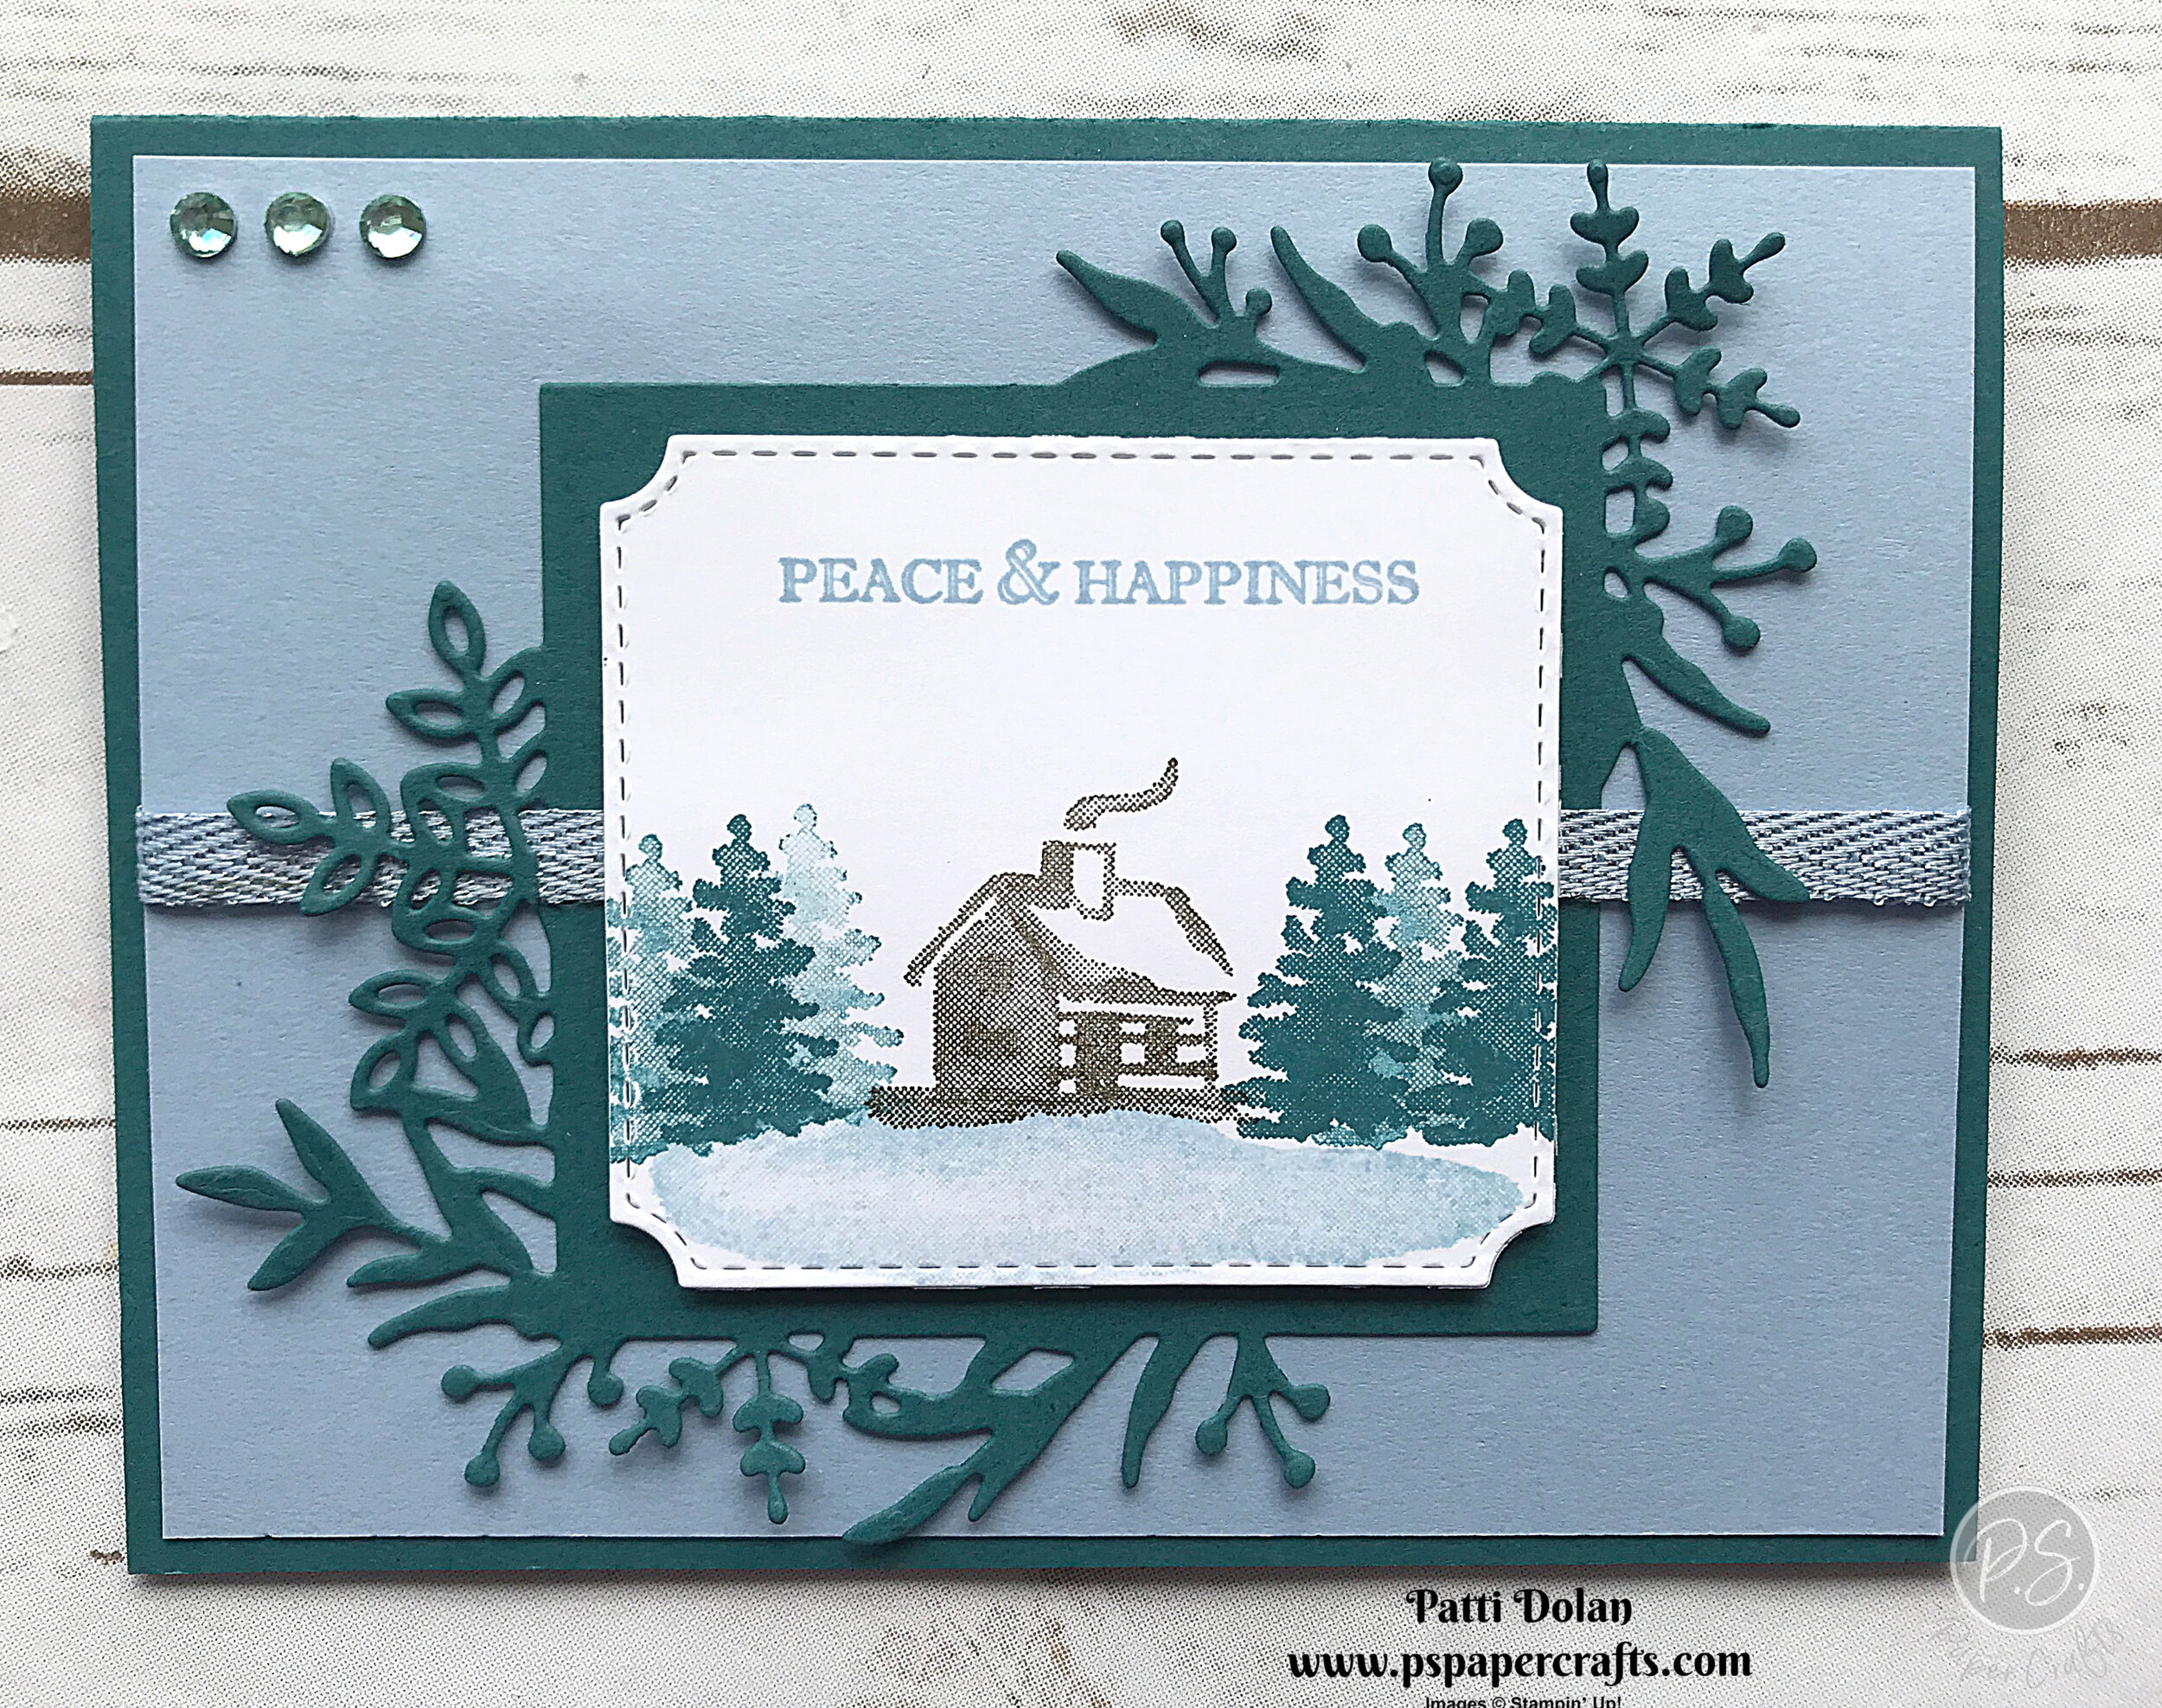 Snow Front - Peace & Happiness Card.jpg